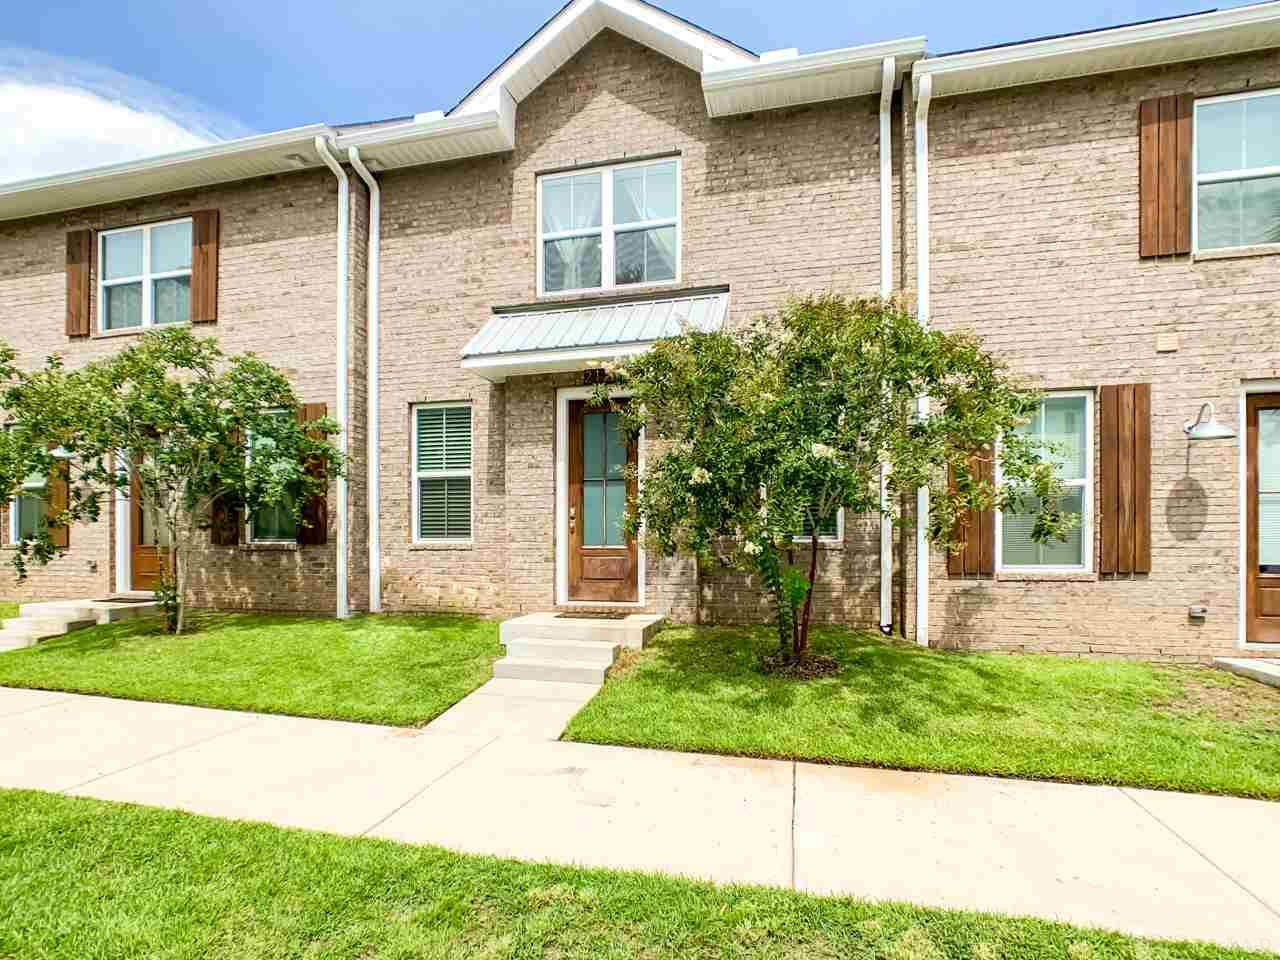 Downtown living at The Junction at West Hill!  Luxury vinyl flooring downstairs and primary bedroom.  Stainless appliances, Granite counter-tops, recessed LED lighting, single car garage.  Impact windows, and 8 foot exterior doors. Stainless appliances. Small fenced backyard for the doggy. Indoor Laundry hookups. Smart home features. Only a 5 block walk to downtown Pensacola!!